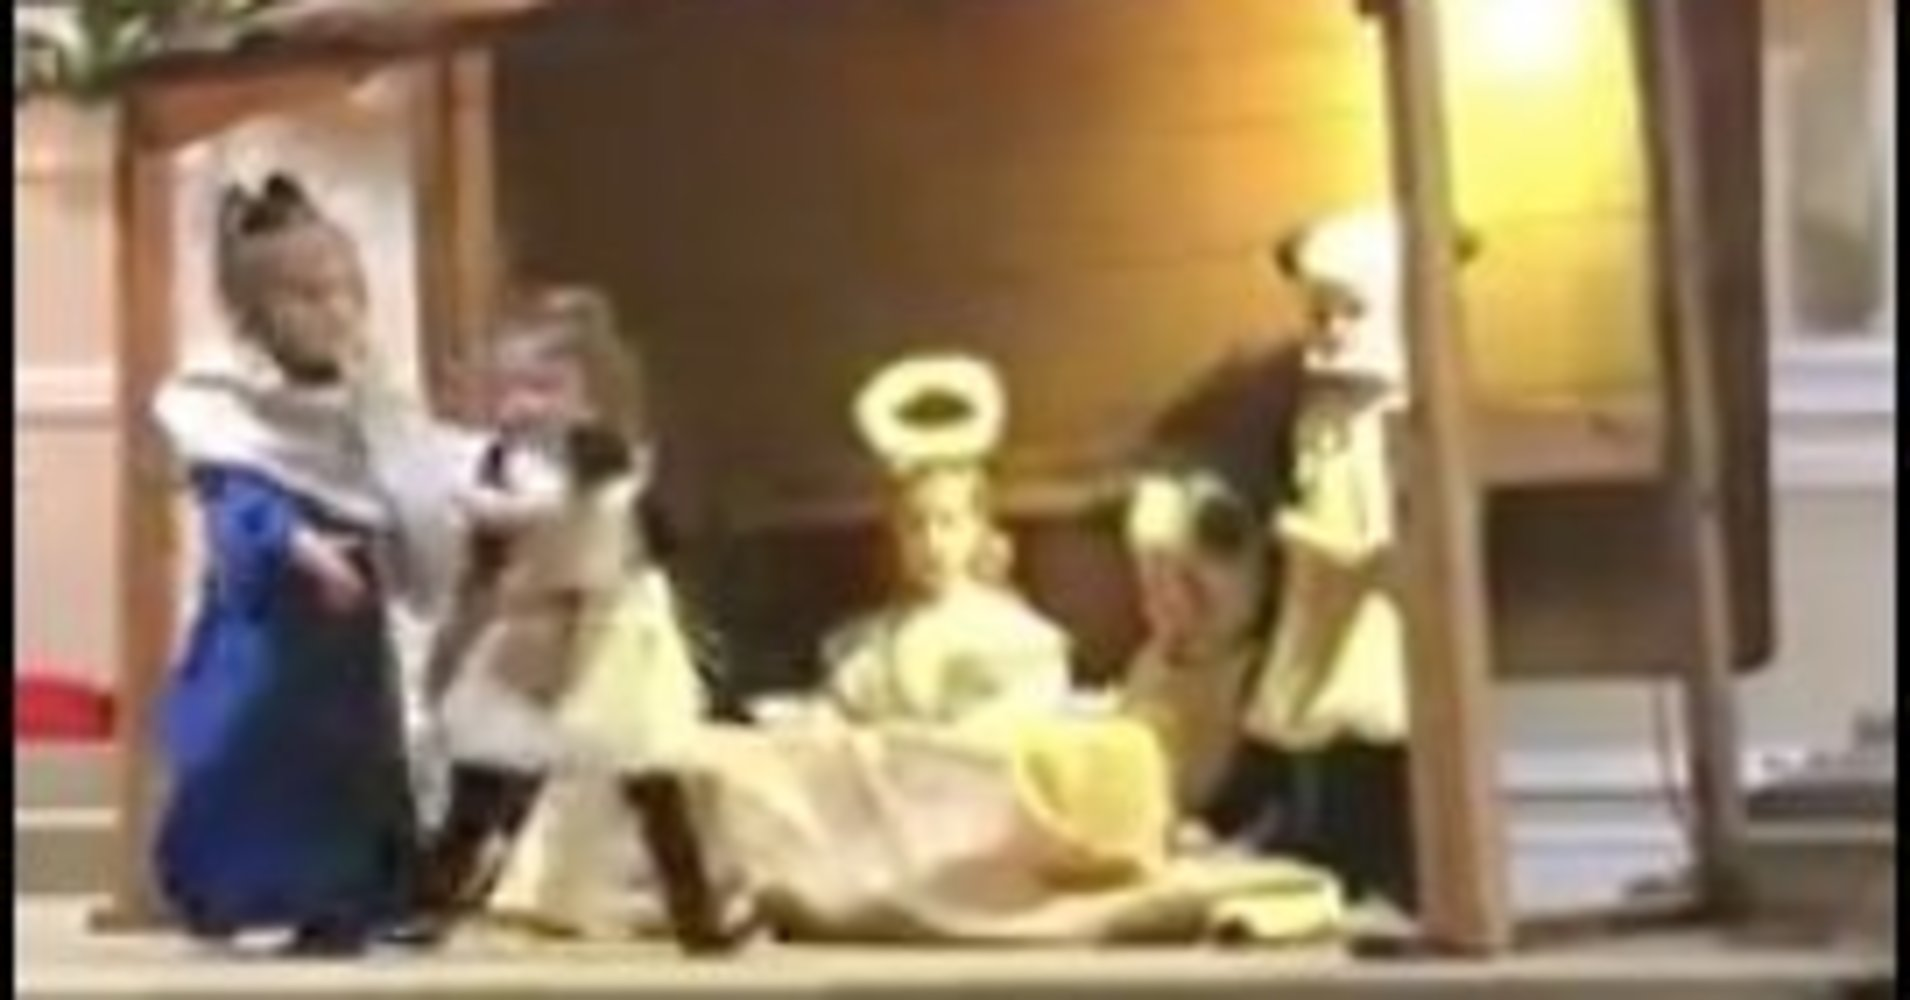 Little sheep goes rogue at nativity scene, sparks tussle at the manger https://t.co/ps5G2PsUVP https://t.co/re4Y01E2mI